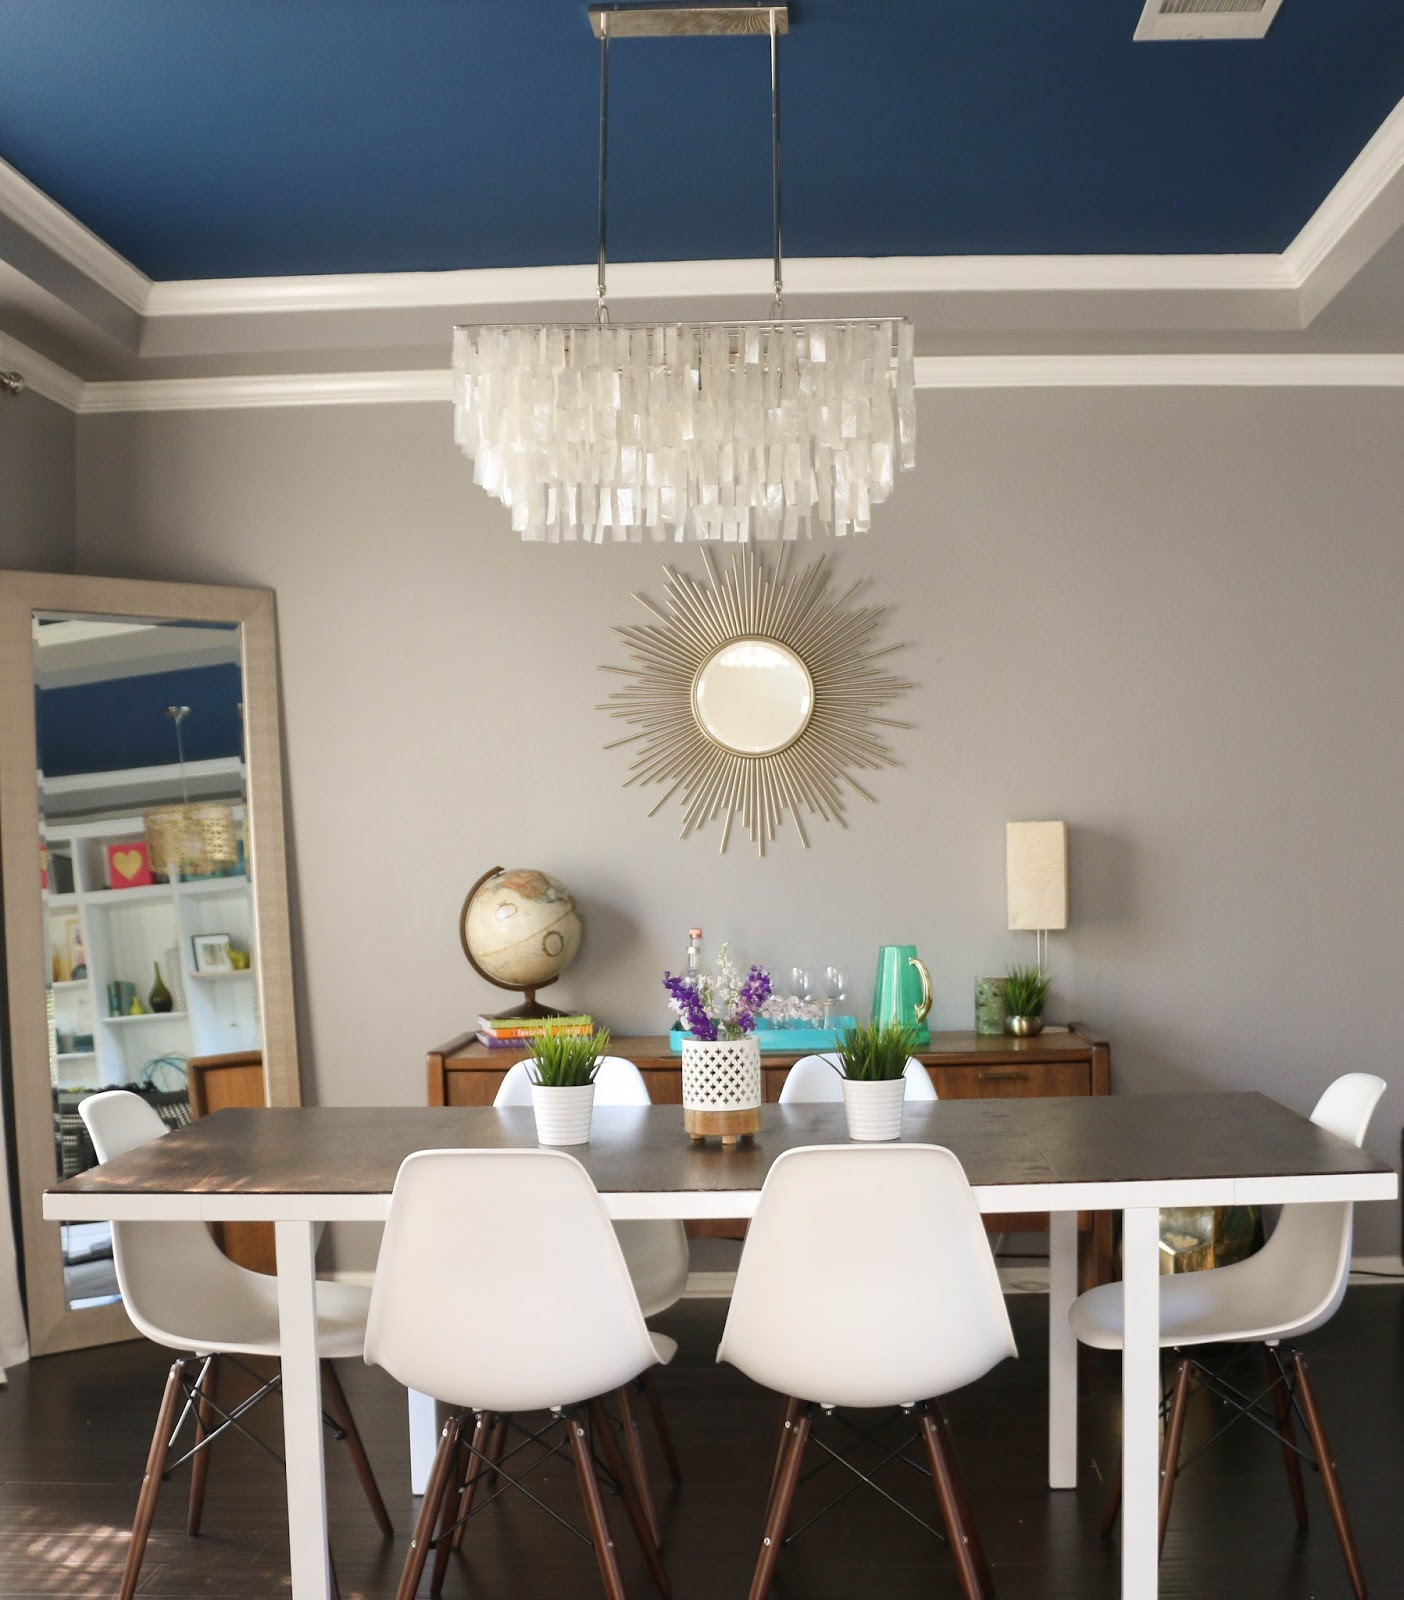 Discussion on this topic: See How This Dining Room Went From , see-how-this-dining-room-went-from/